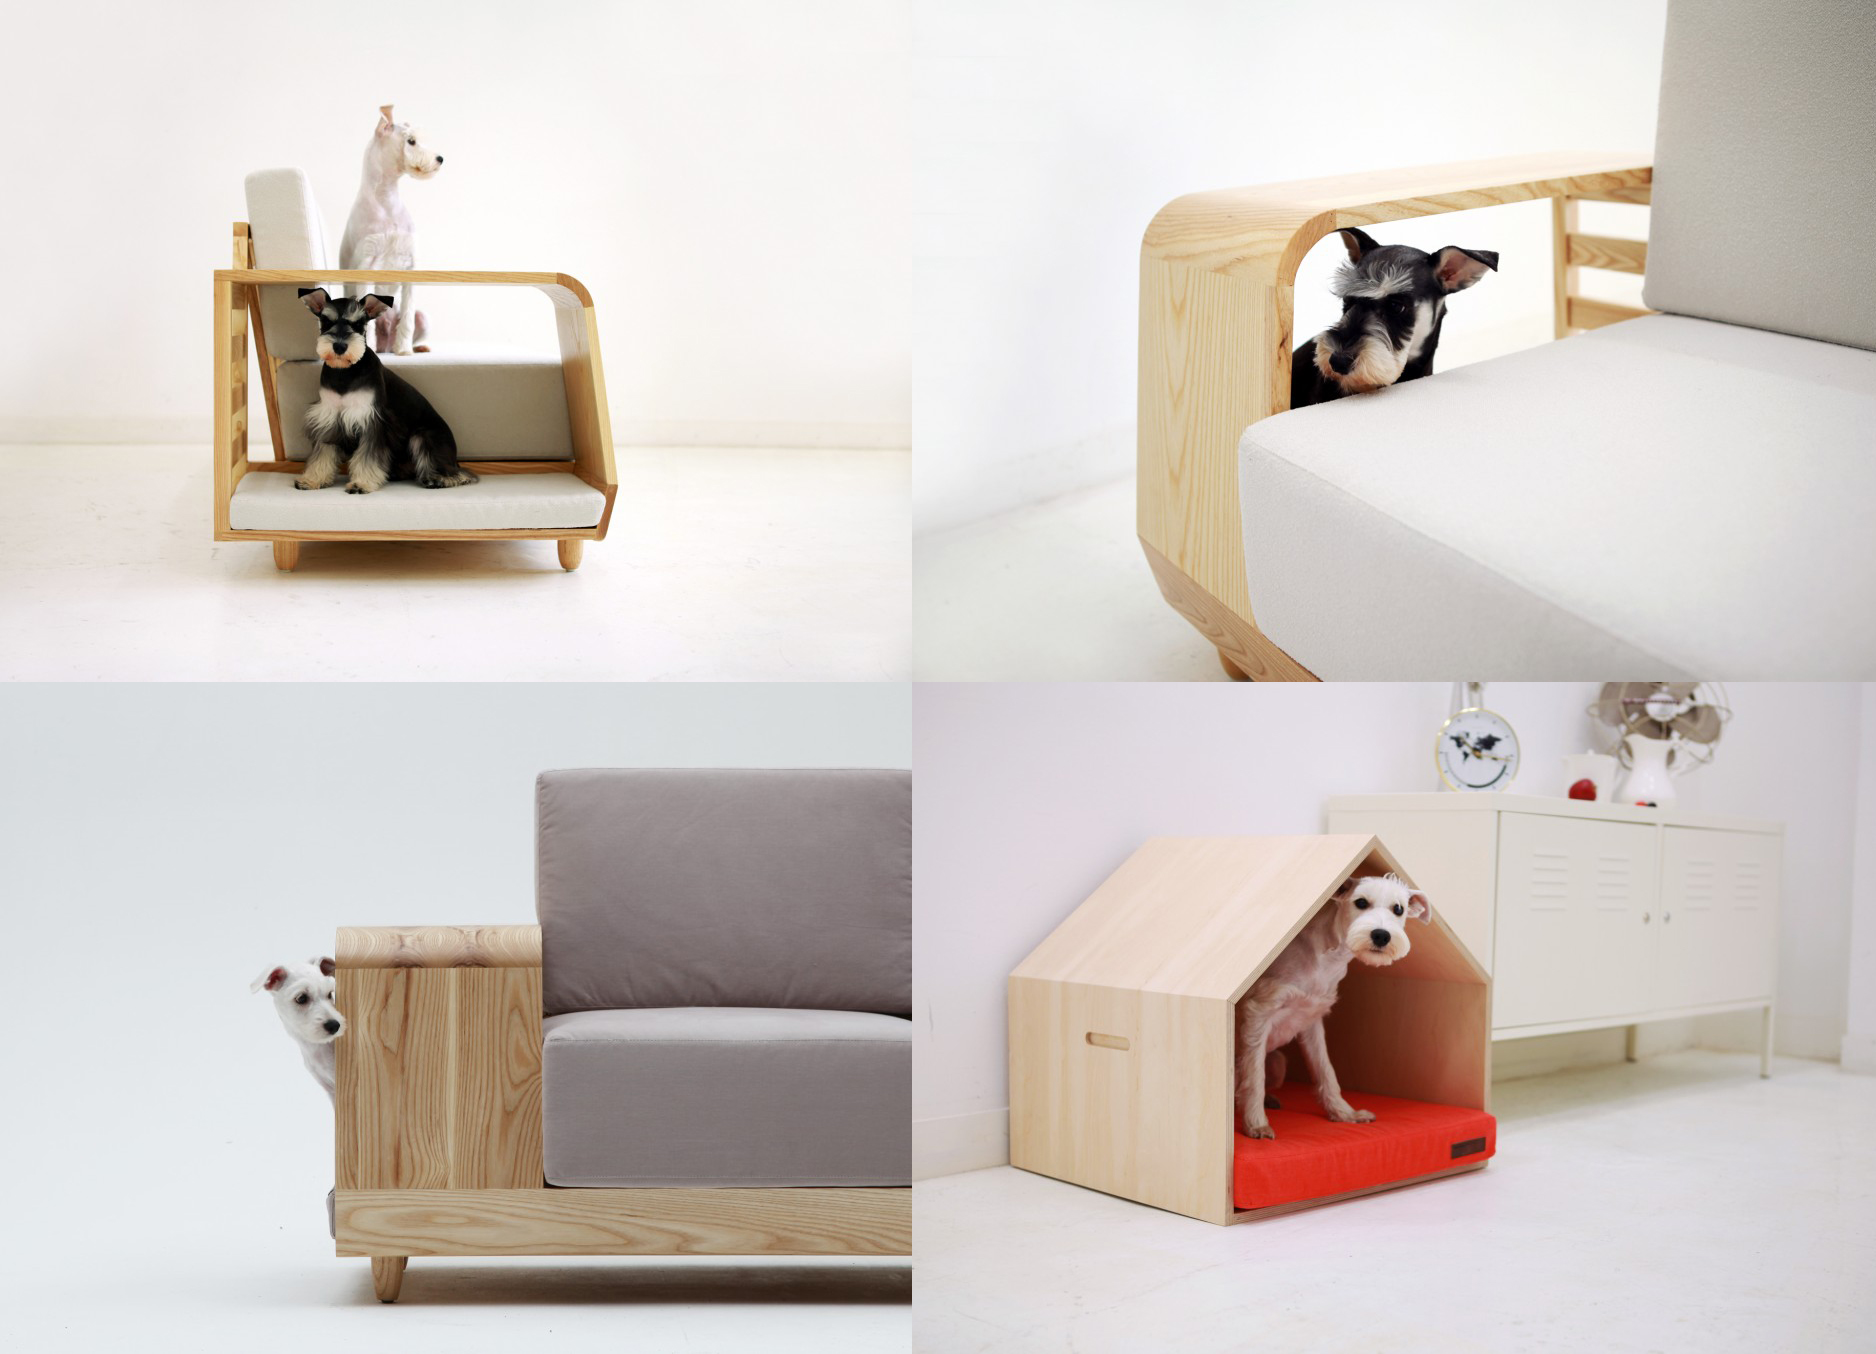 Modern design ideas for our furry friends studio mm architect - Contemporary cat furniture ideas ...